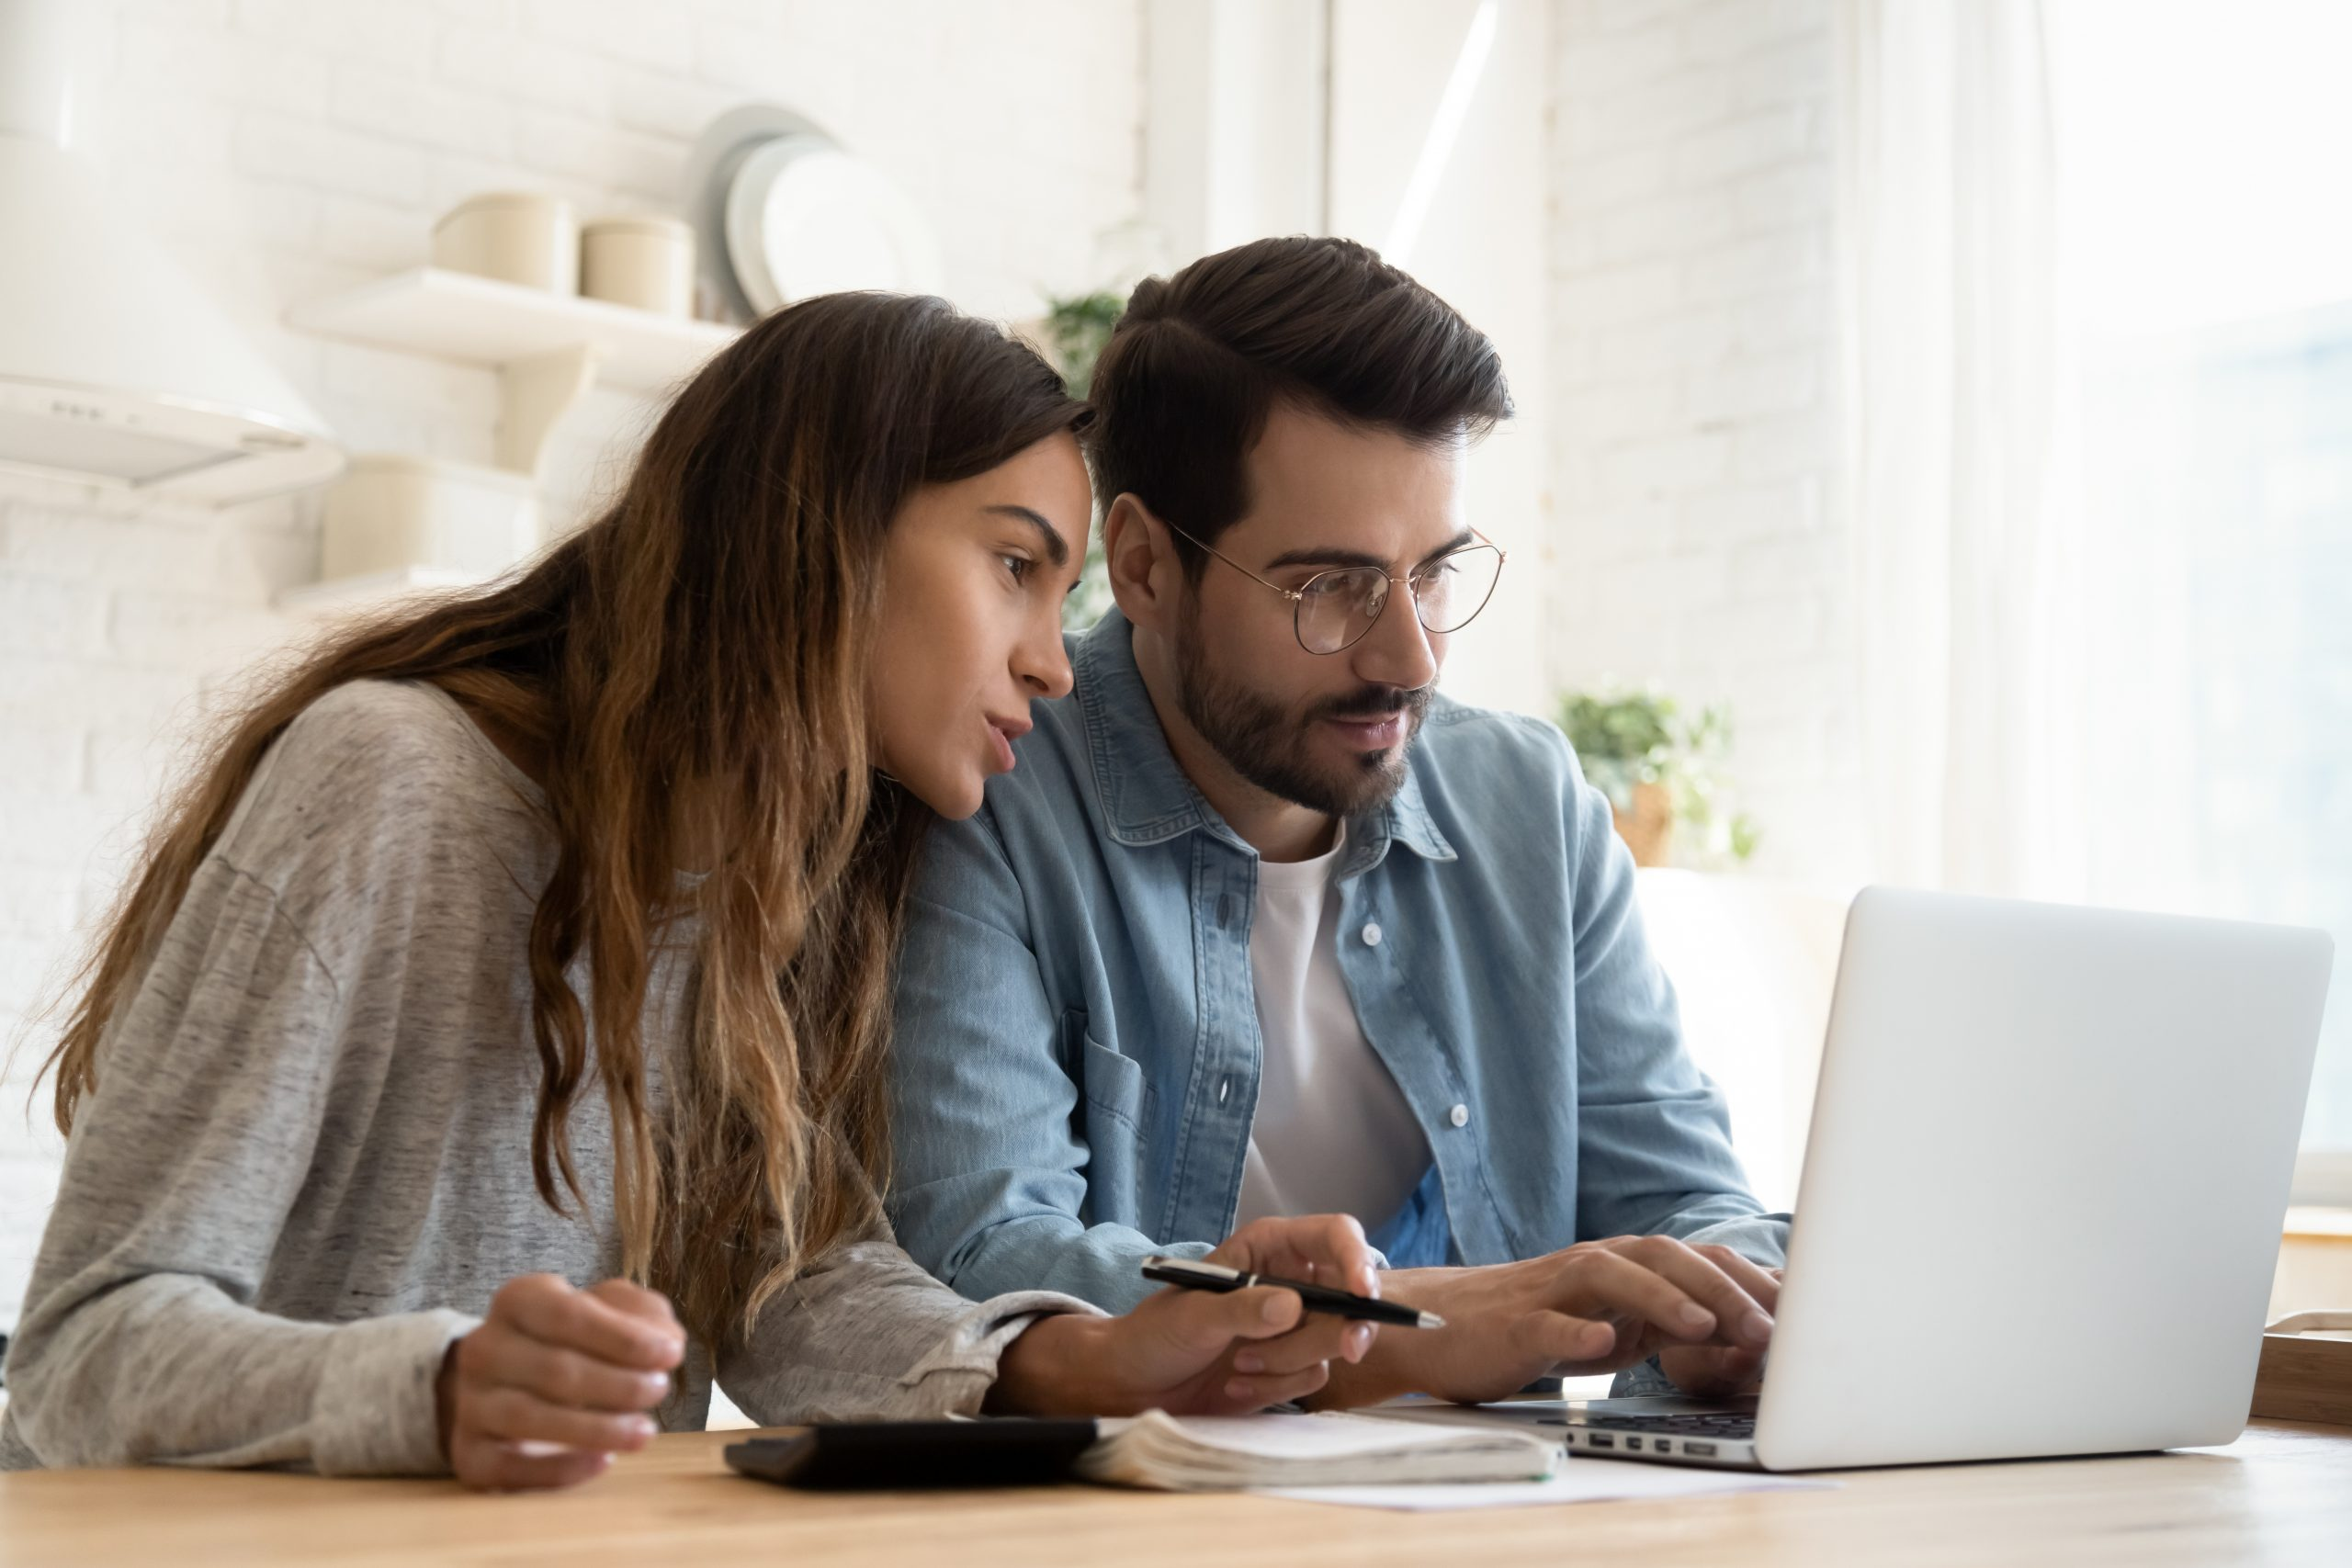 Focused young couple calculating bills, planning budget together